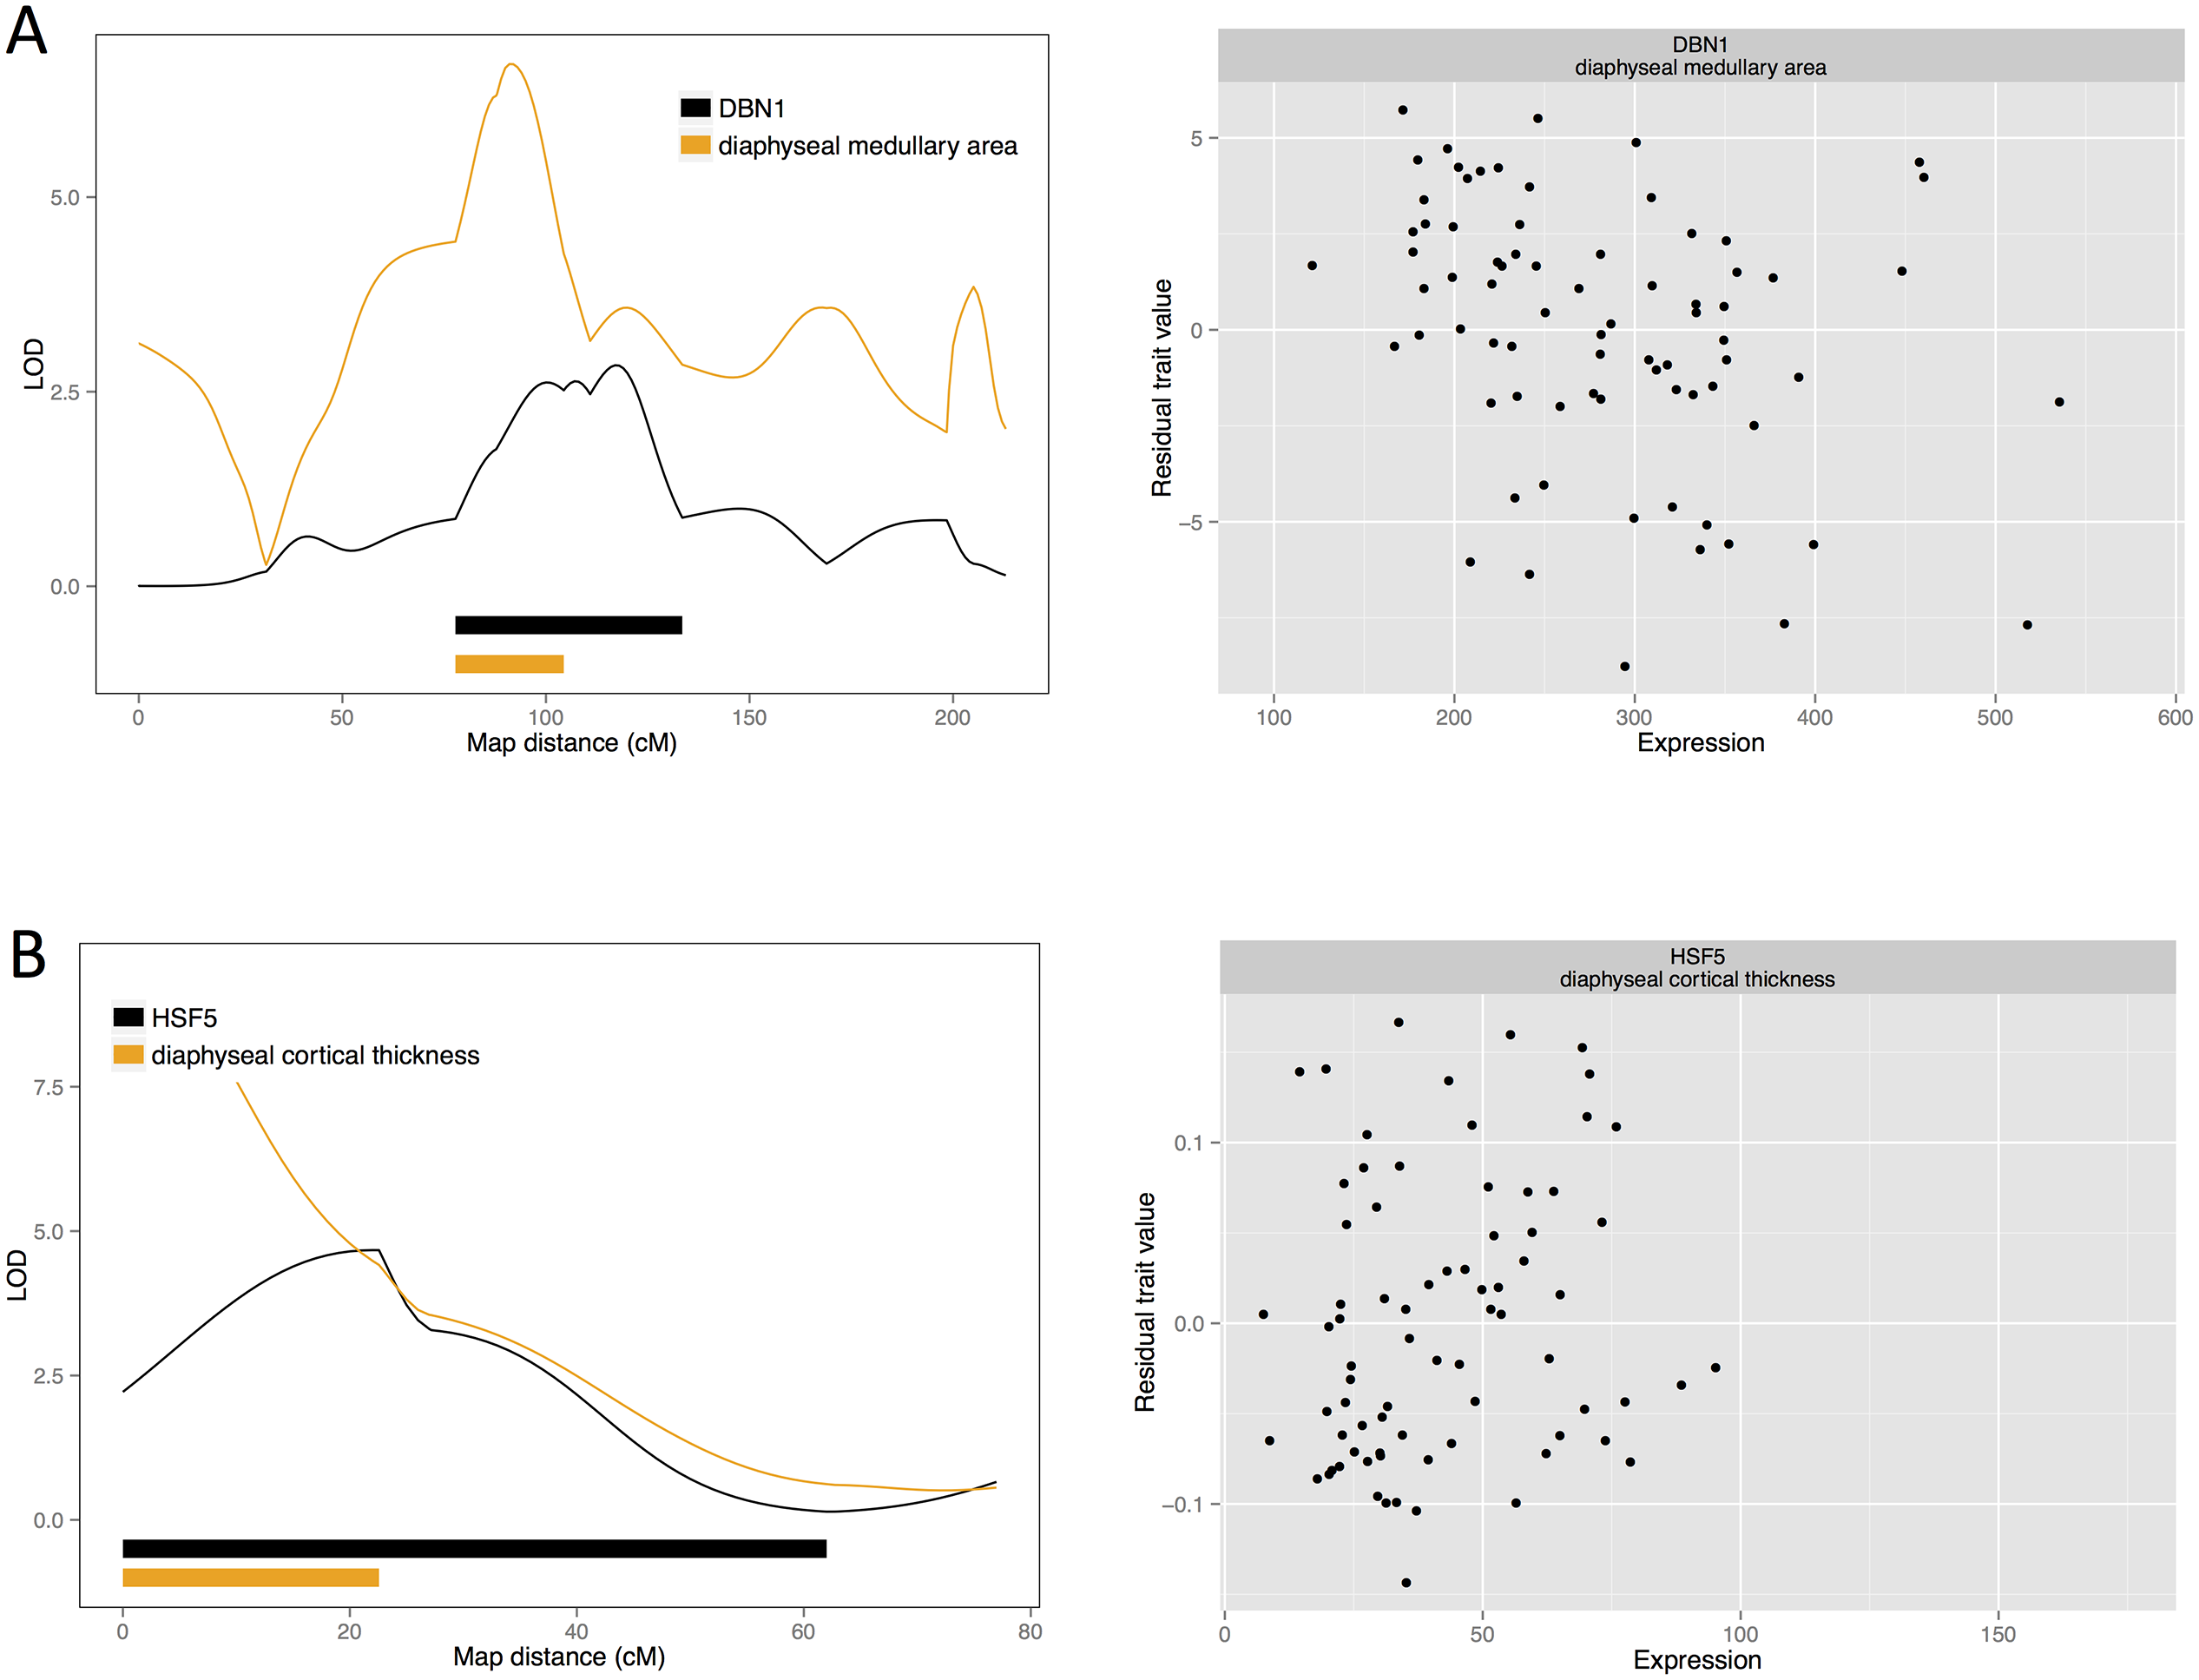 Candidate quantitative trait genes (A) <i>DNB1</i> for female medullary and (B) <i>HSF5</i> for female cortical traits: LOD curves and confidence intervals of bone QTL and associated eQTL, and scatterplots of residual phenotypes against gene expression values.